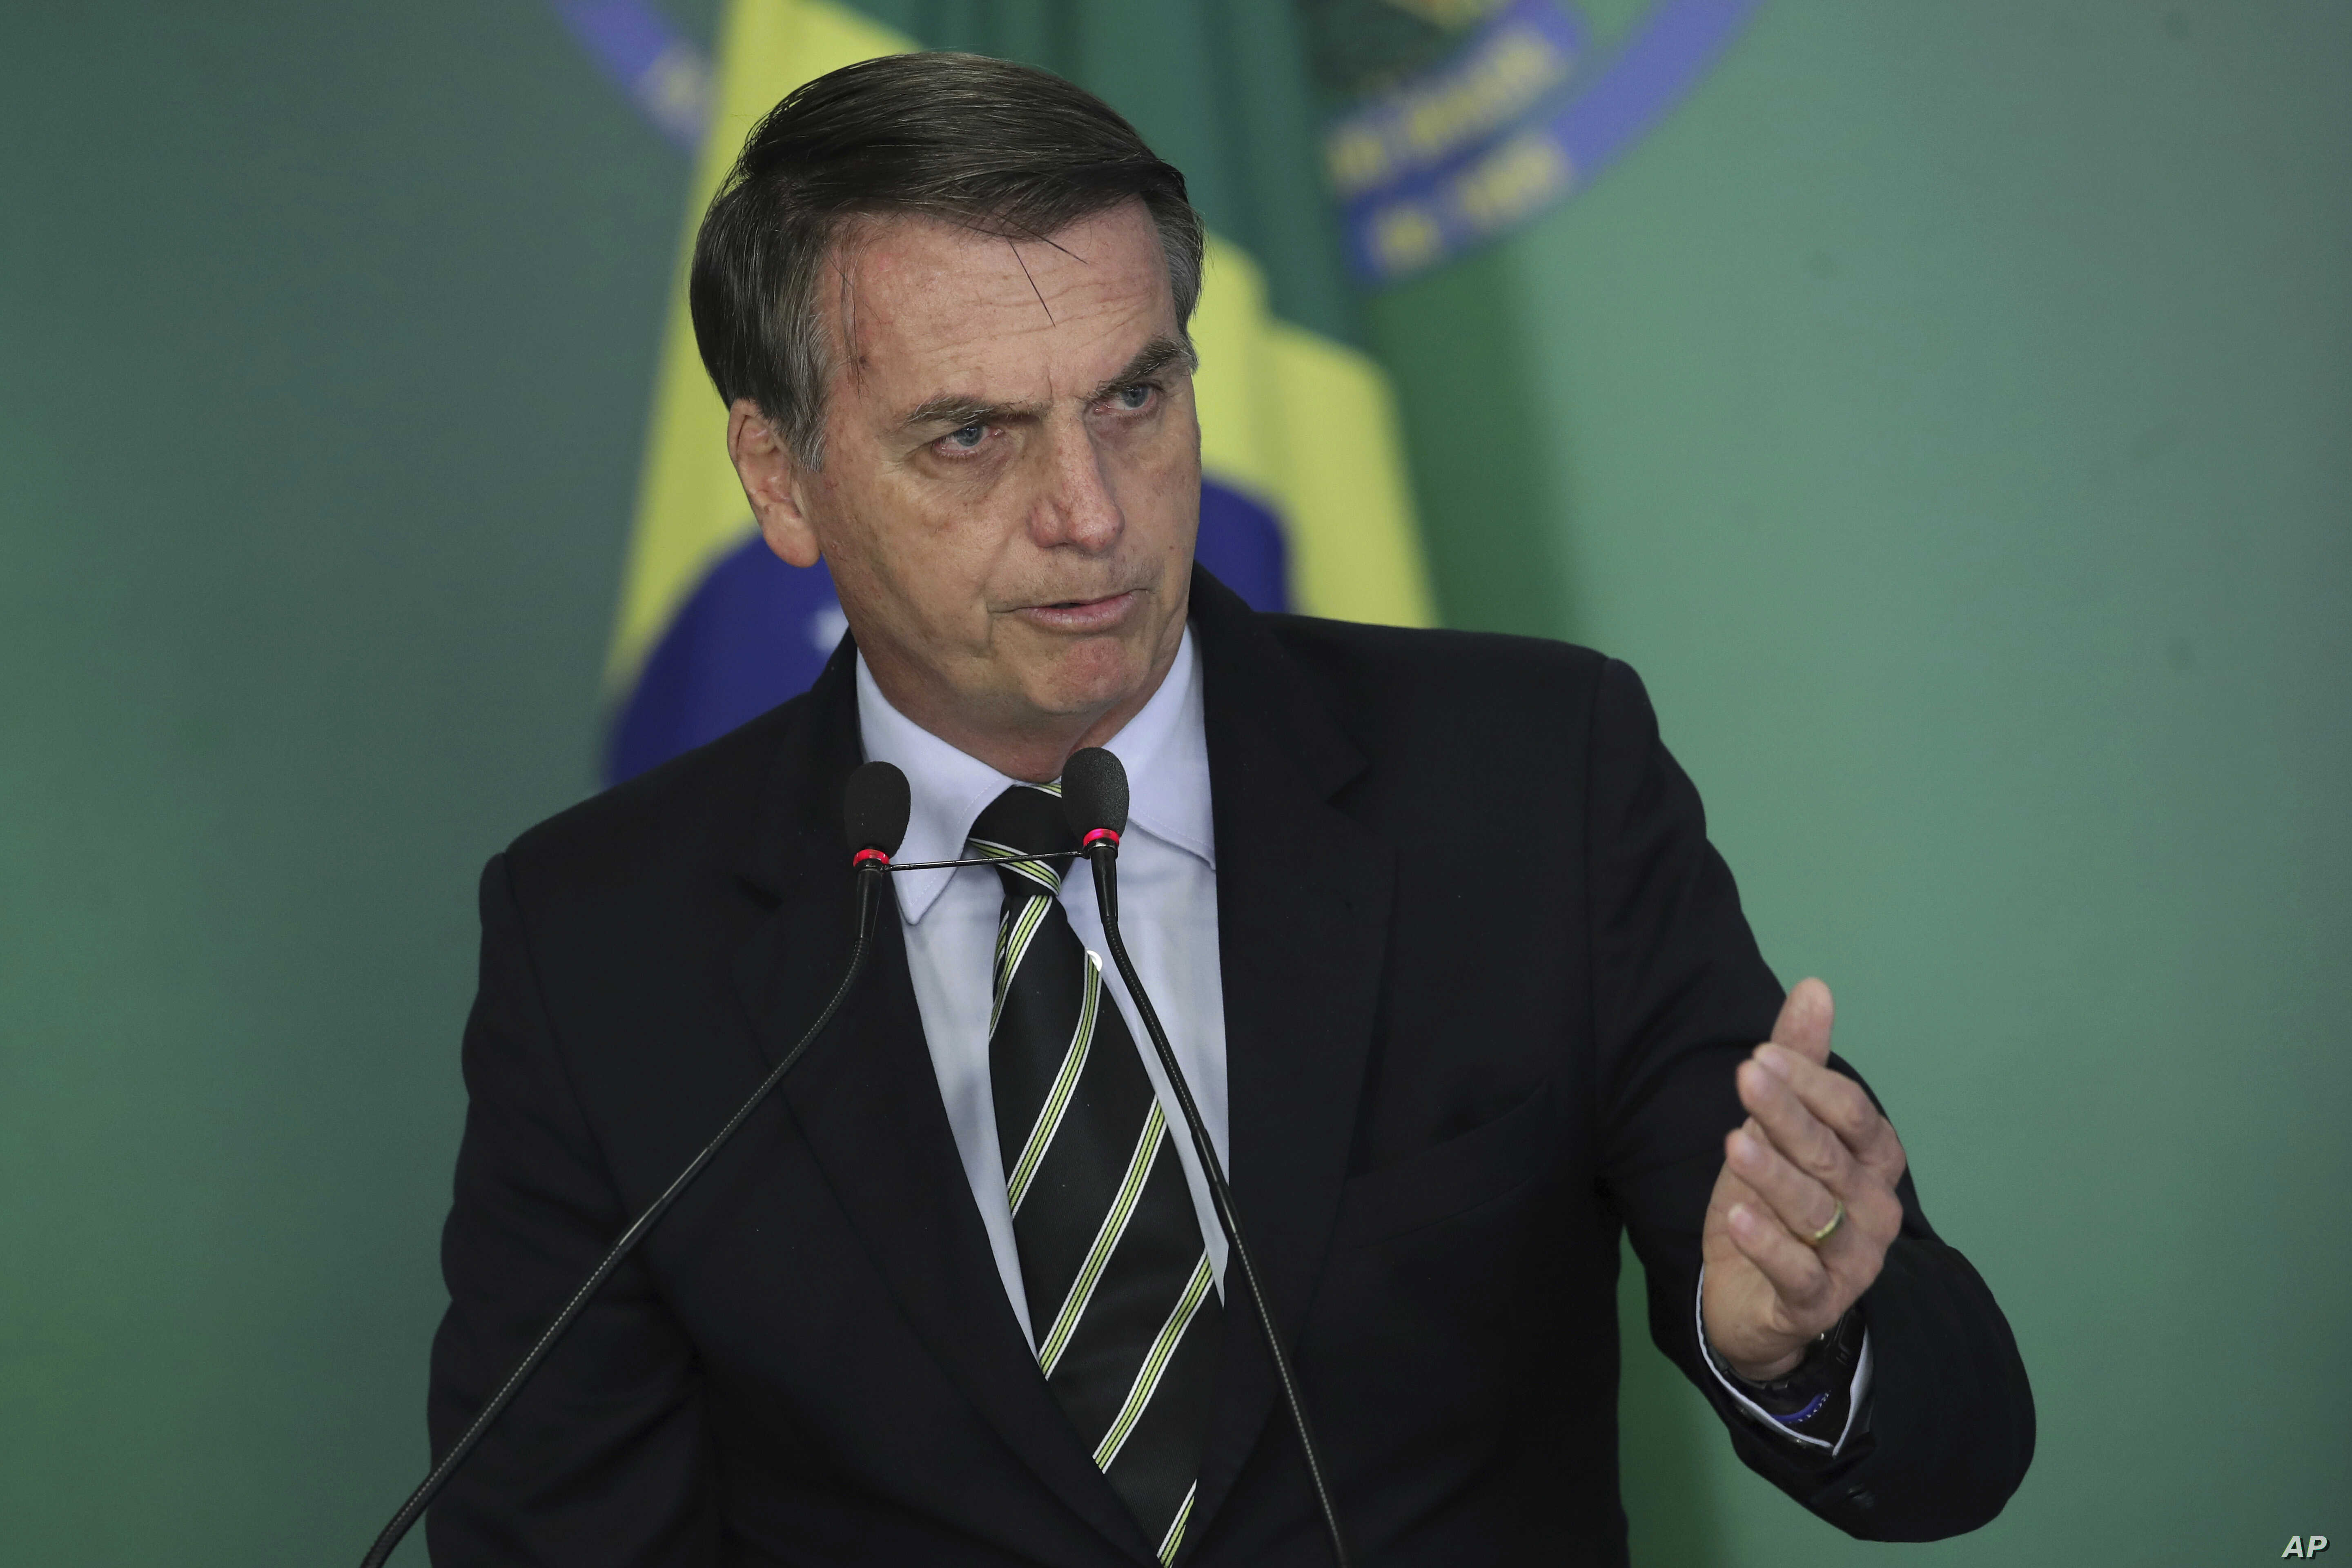 Brazil's President Jair Bolsonaro speaks during a ceremony where he signed a decree loosening restrictions on owning a firearm at Planalto presidential palace in Brasilia, Brazil, Tuesday, Jan. 15, 2019.